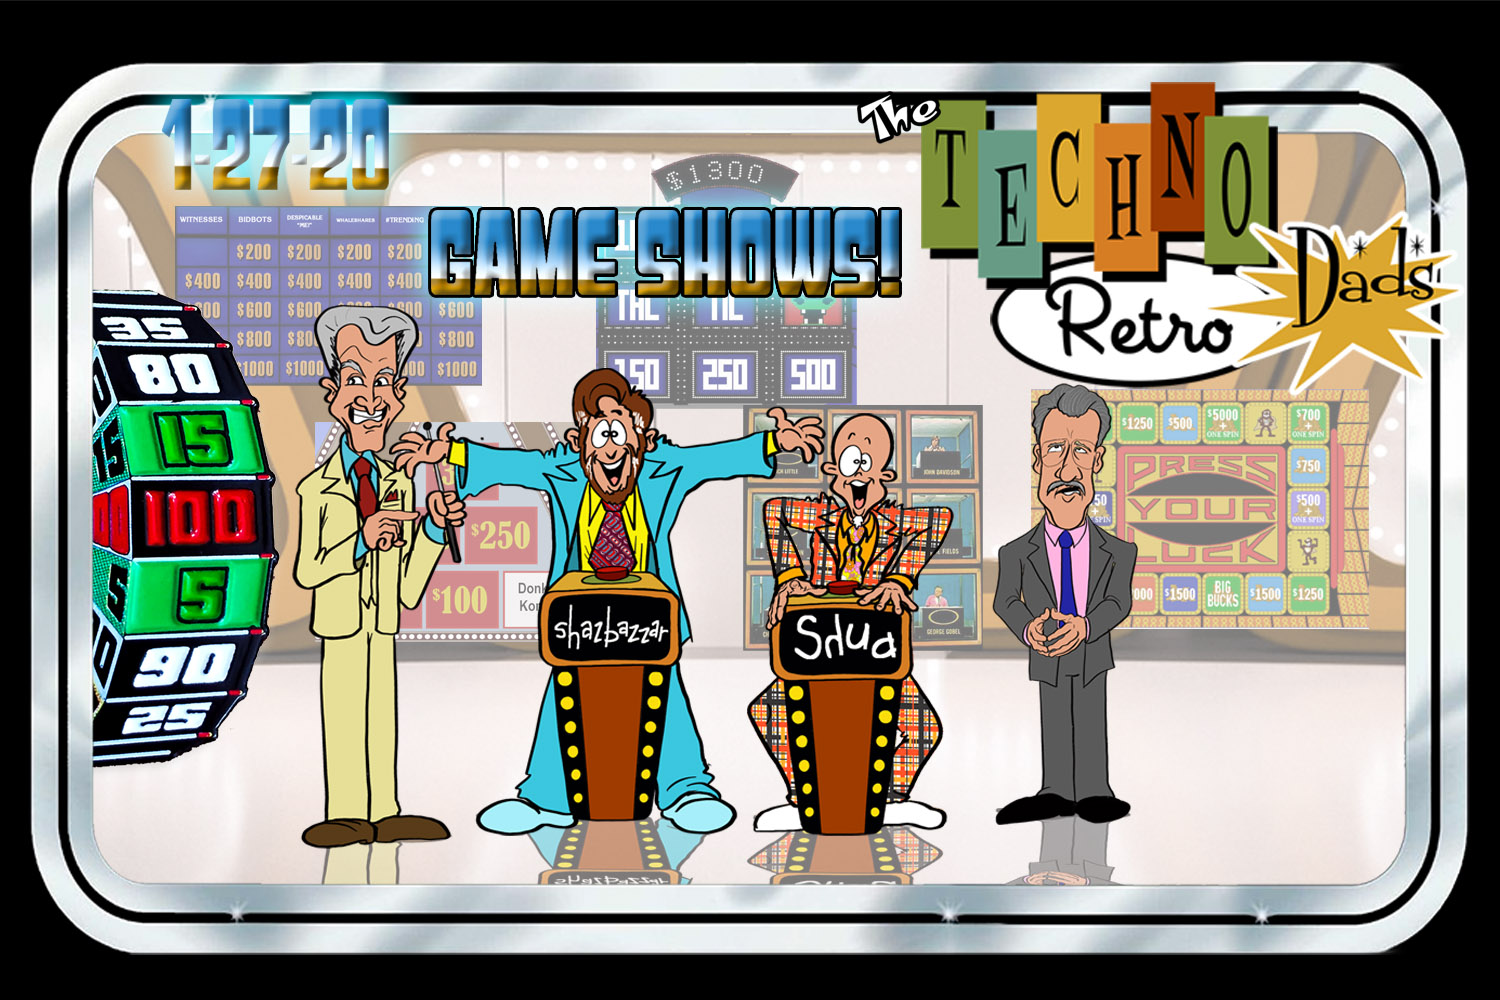 TechnoRetro Dads on Game Shows?